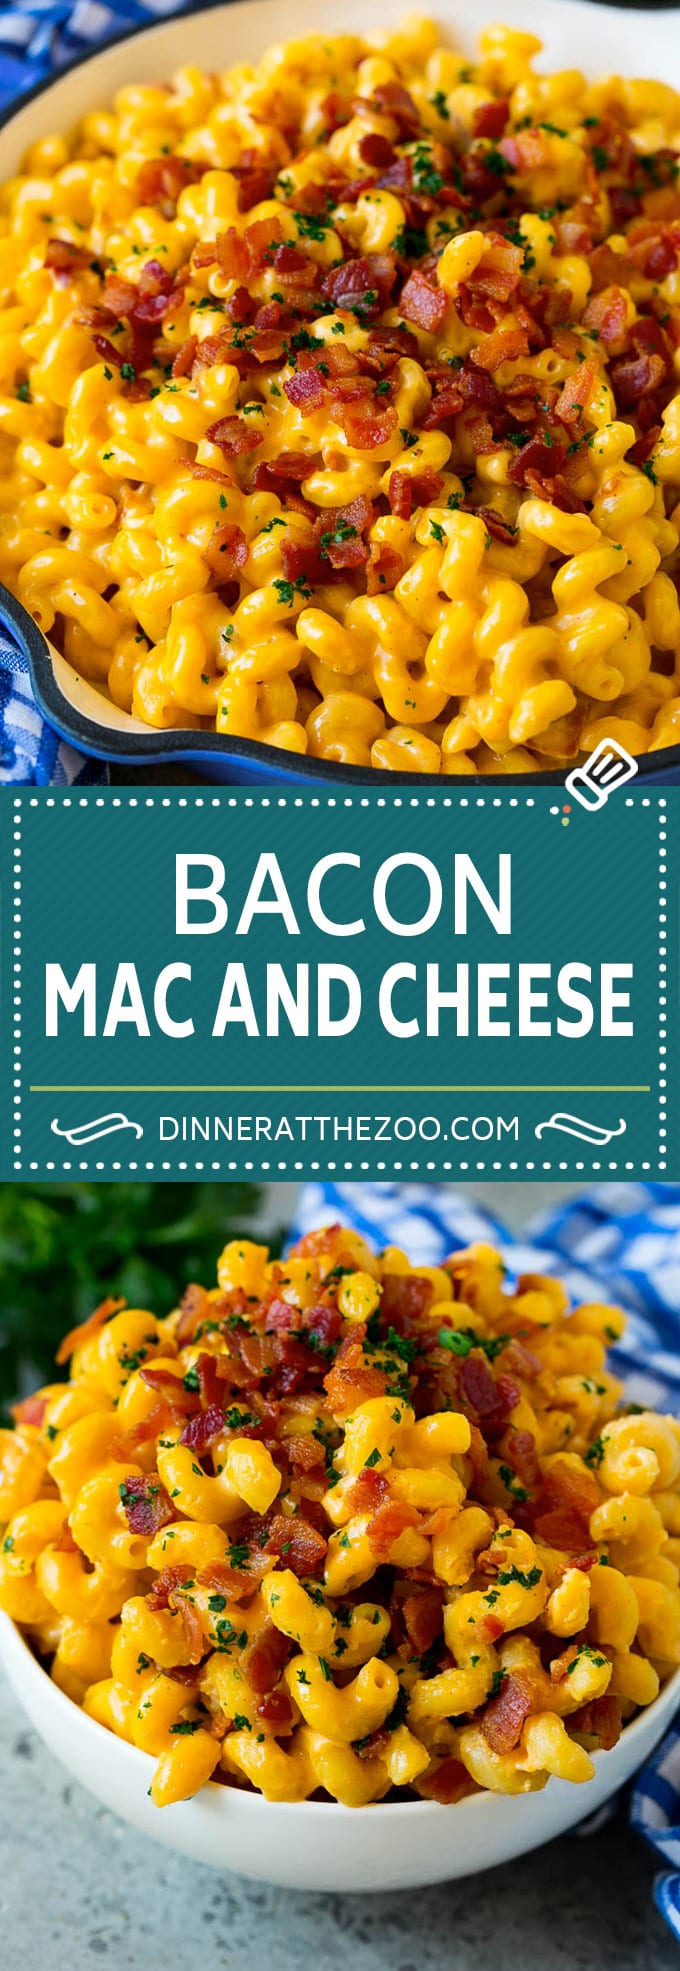 Bacon Mac and Cheese Recipe | One Pot Macaroni and Cheese #macandcheese #cheese #bacon #onepot #dinner #dinneratthezoo